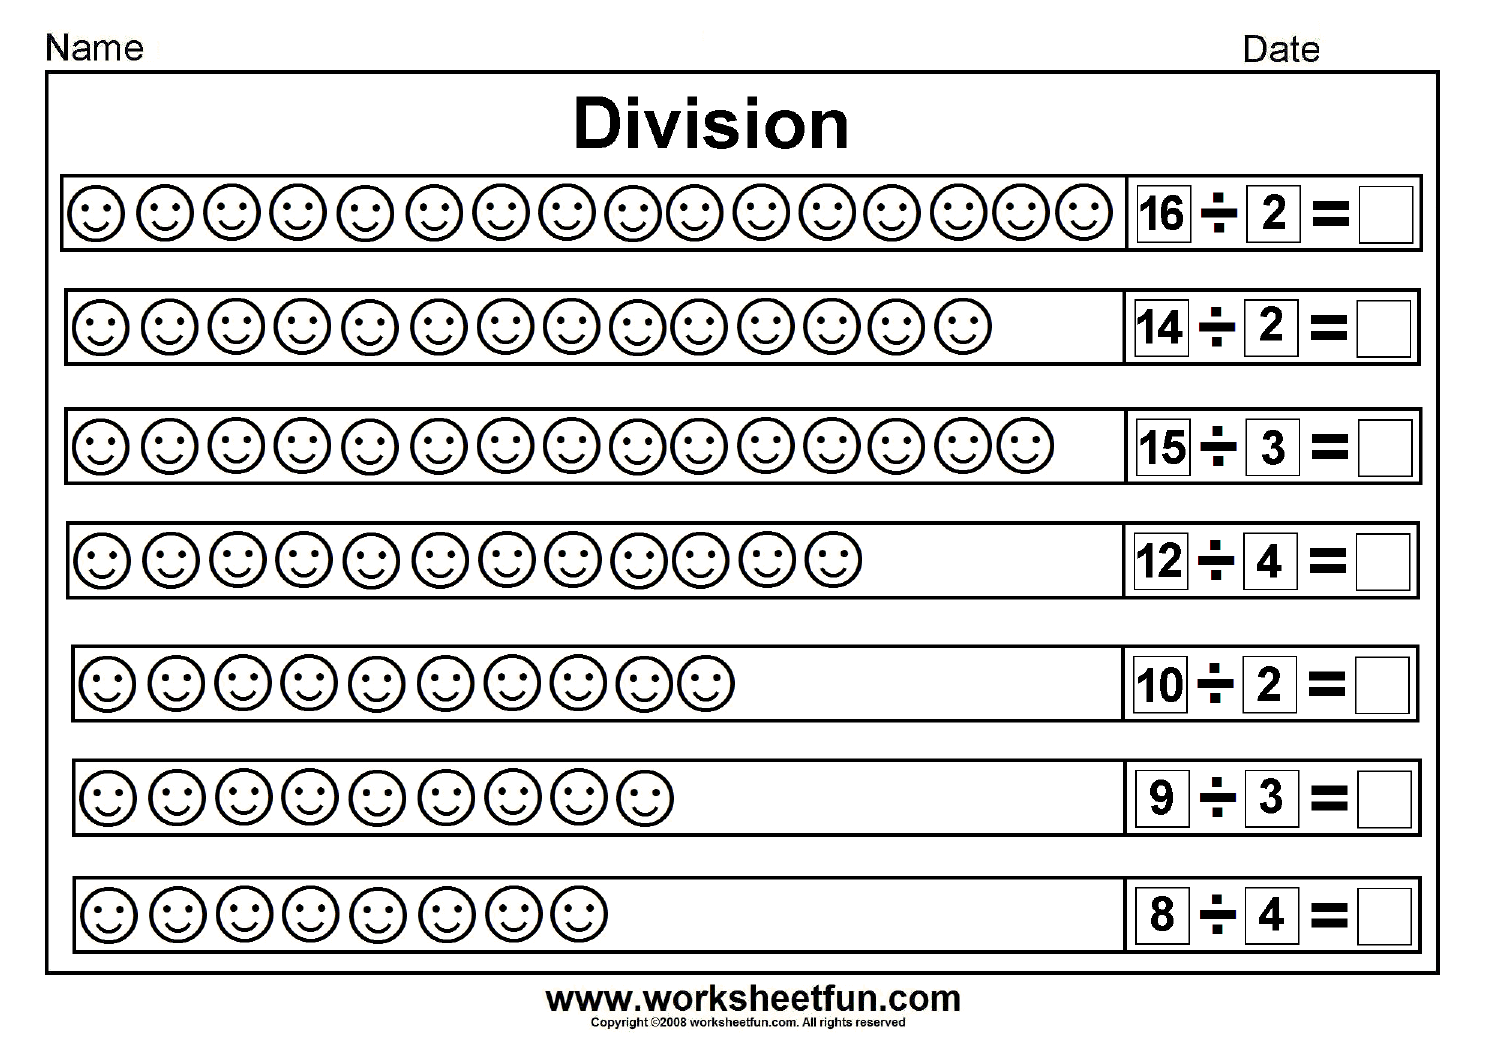 Division Worksheets For 3rd Grade Worksheet – 3rd Grade Division Worksheet